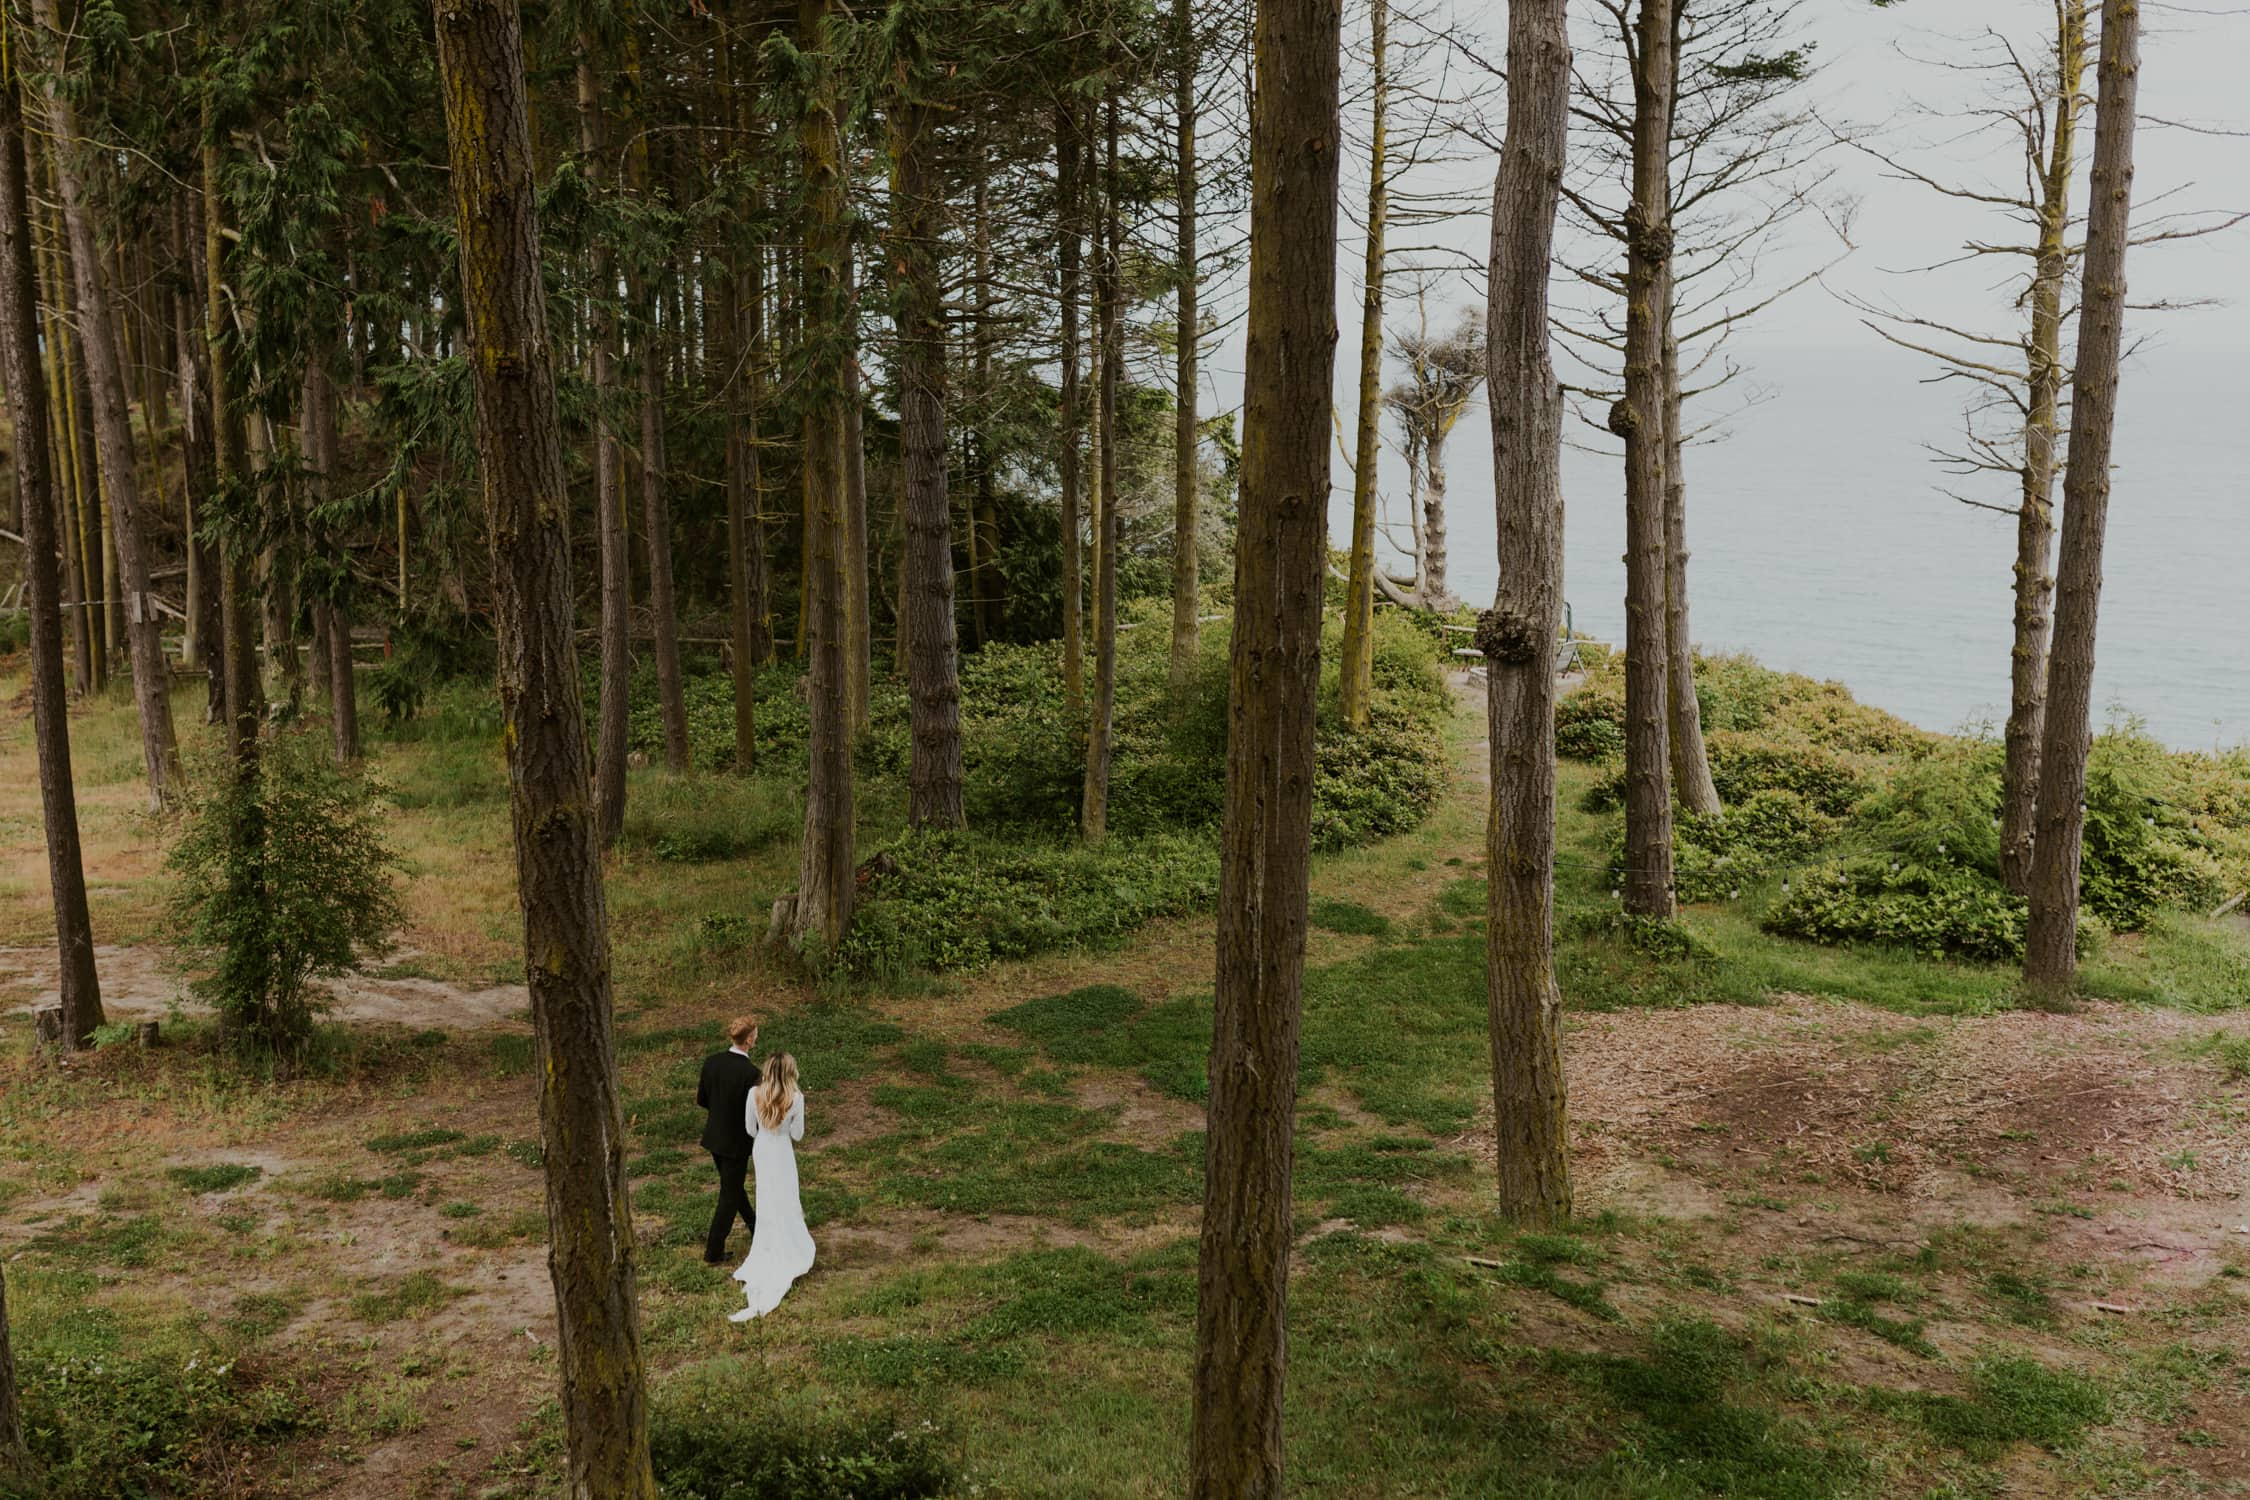 A couple holding hands and walking through trees on their wedding day in Washington State.